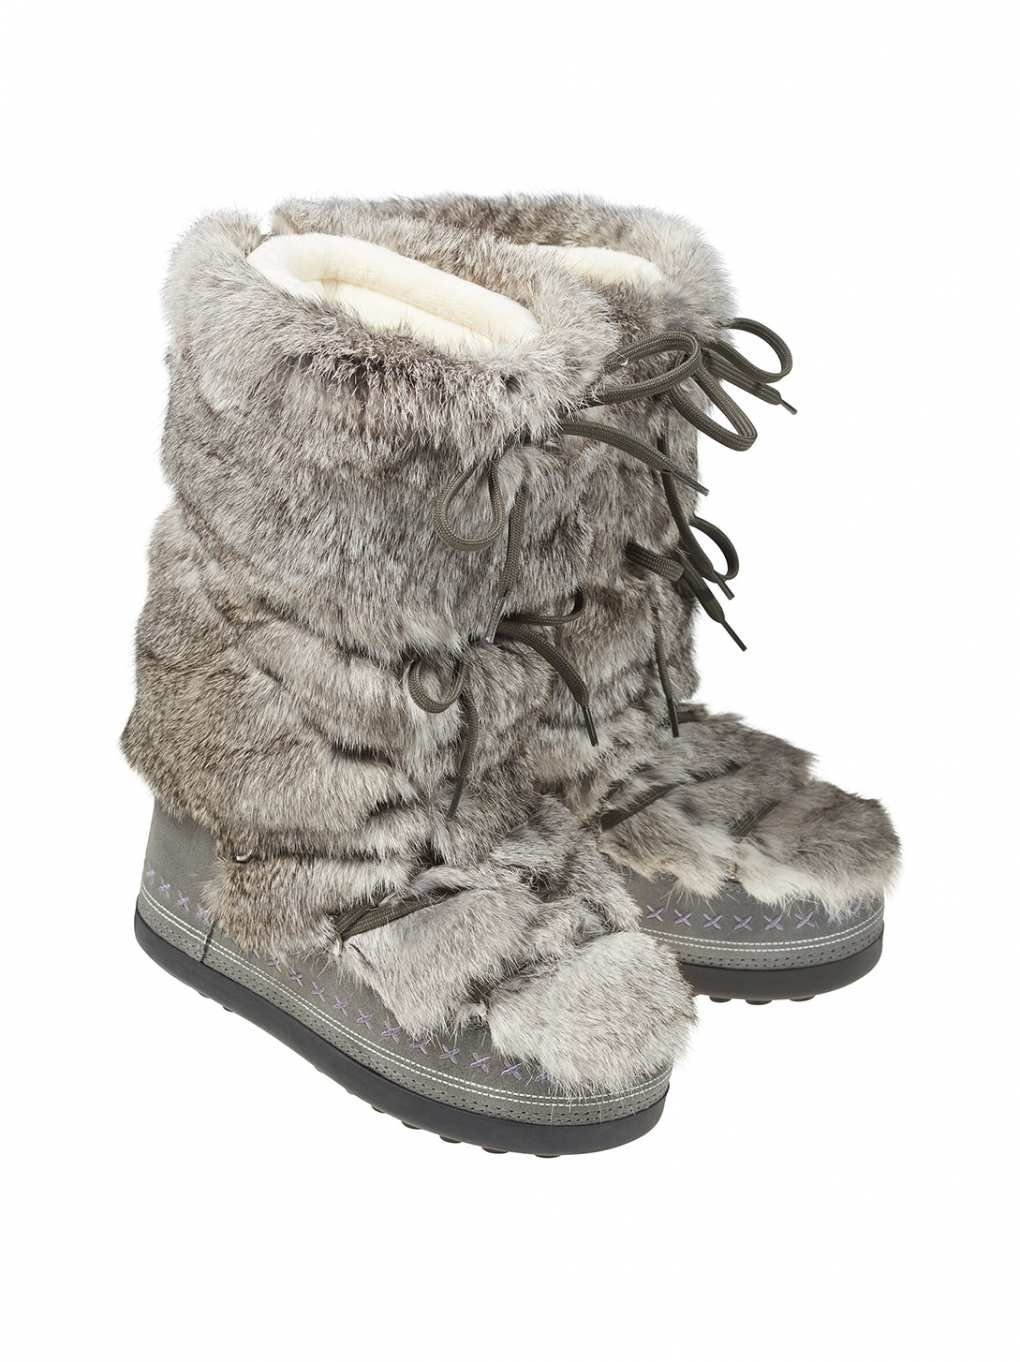 Details about women luxury diamond fashion snow boots rabbit fur boots - Snow Boots Cervinia 24a In Gray For Women Bogner Usa